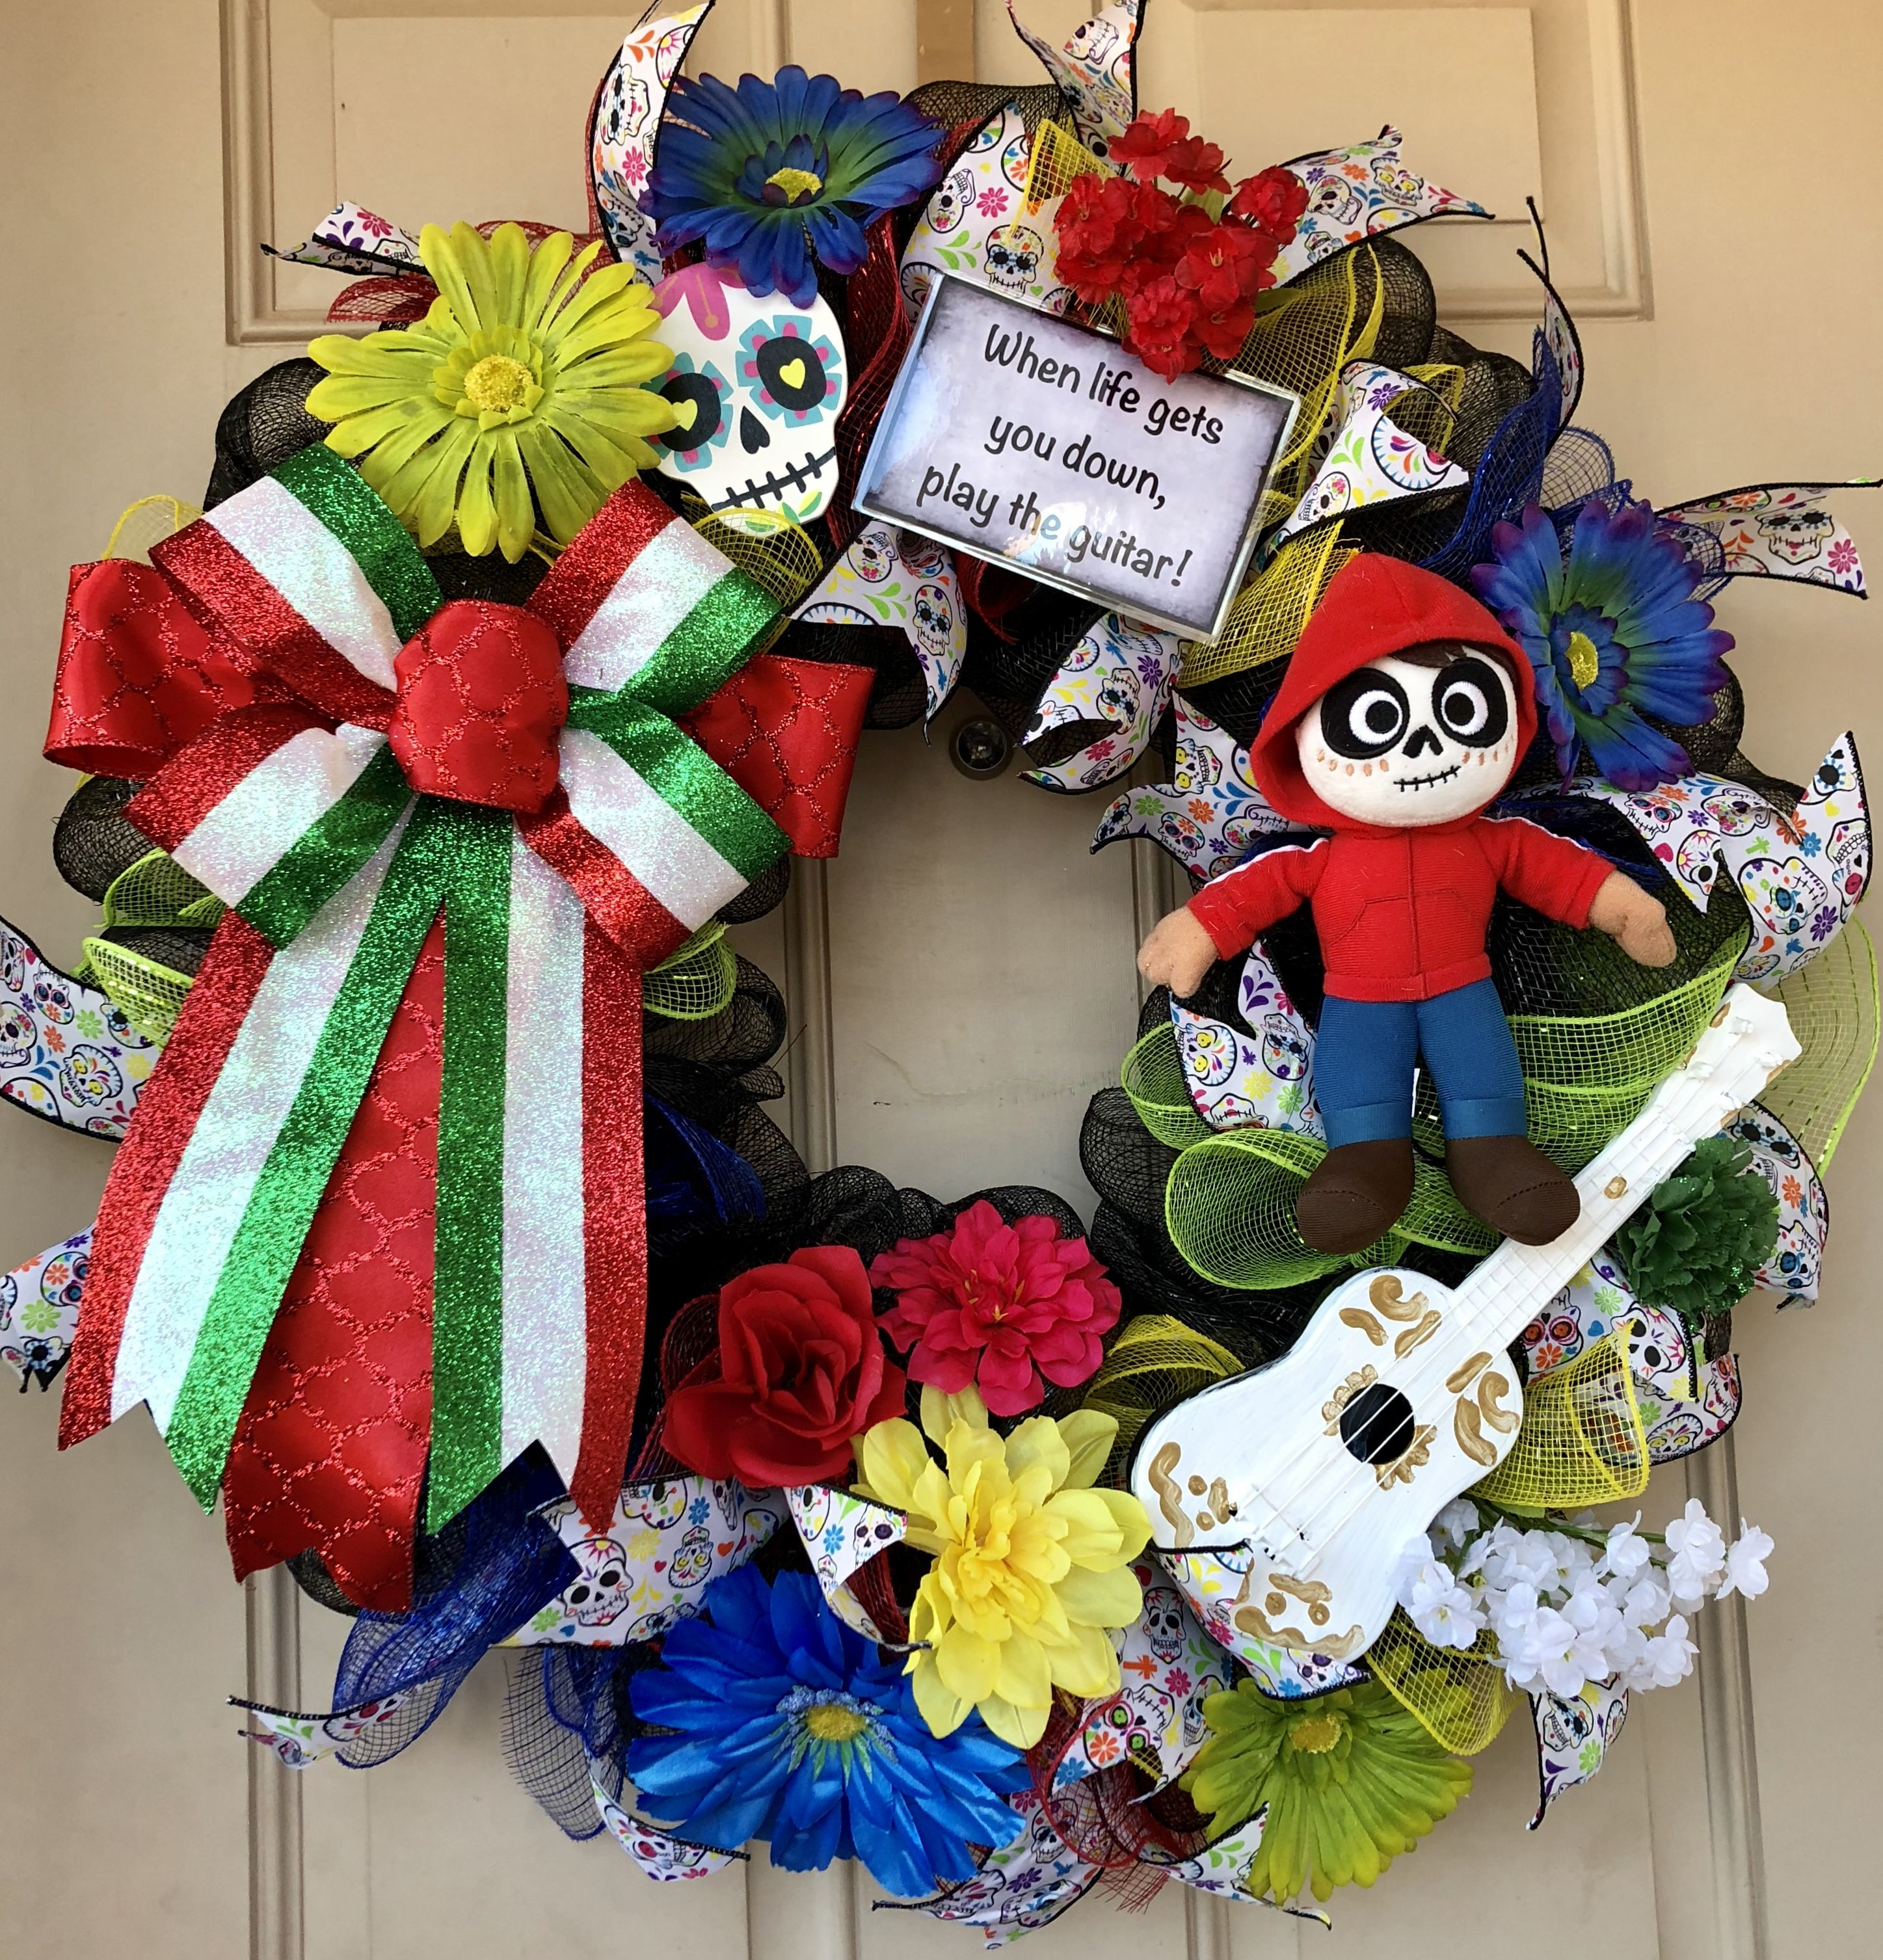 Coco Wreath With Adorable Plush Miguel And His Famous White Guitar